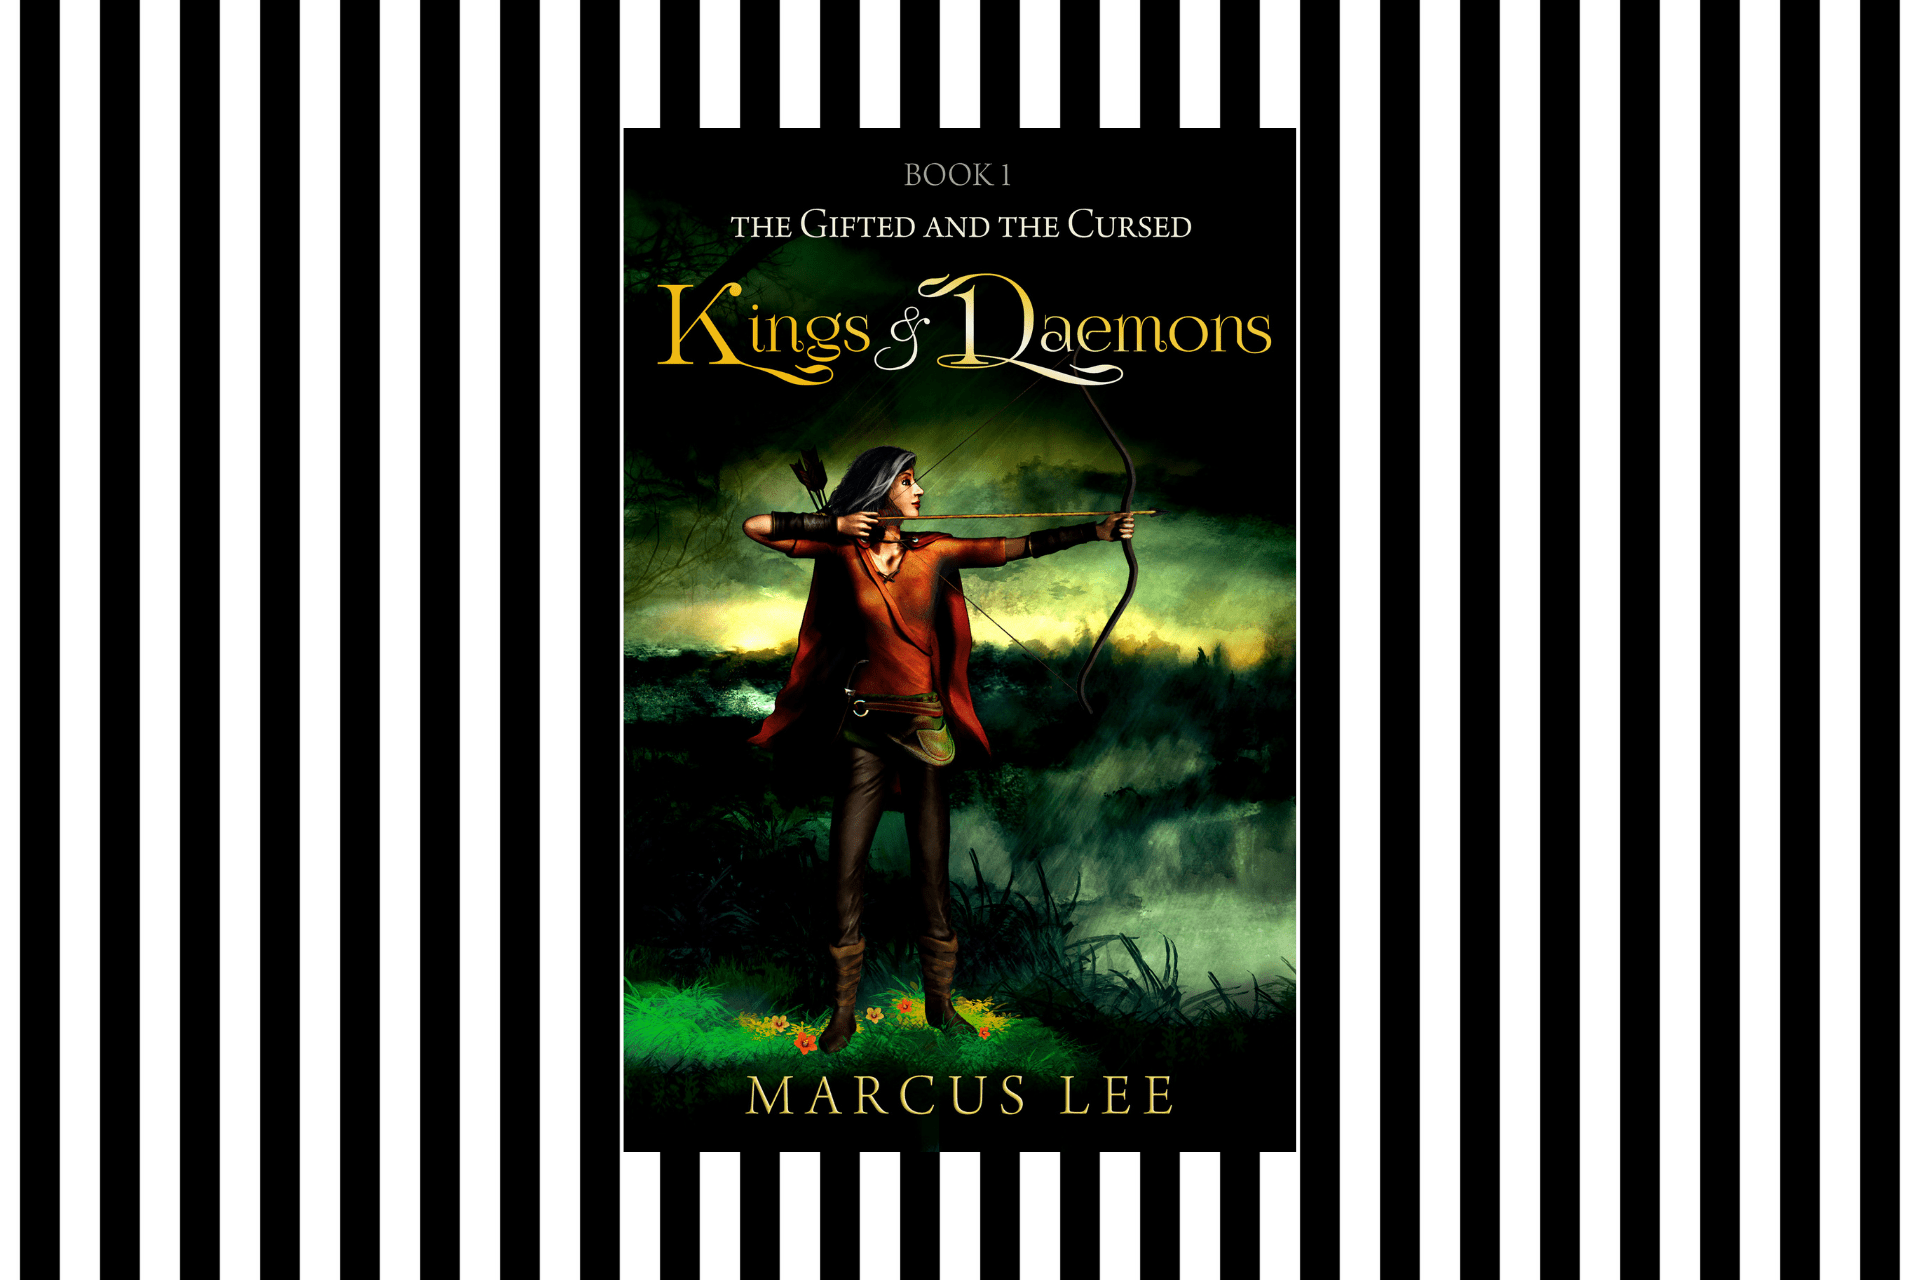 The cover of Kings and Daemons, by Marcus Lee